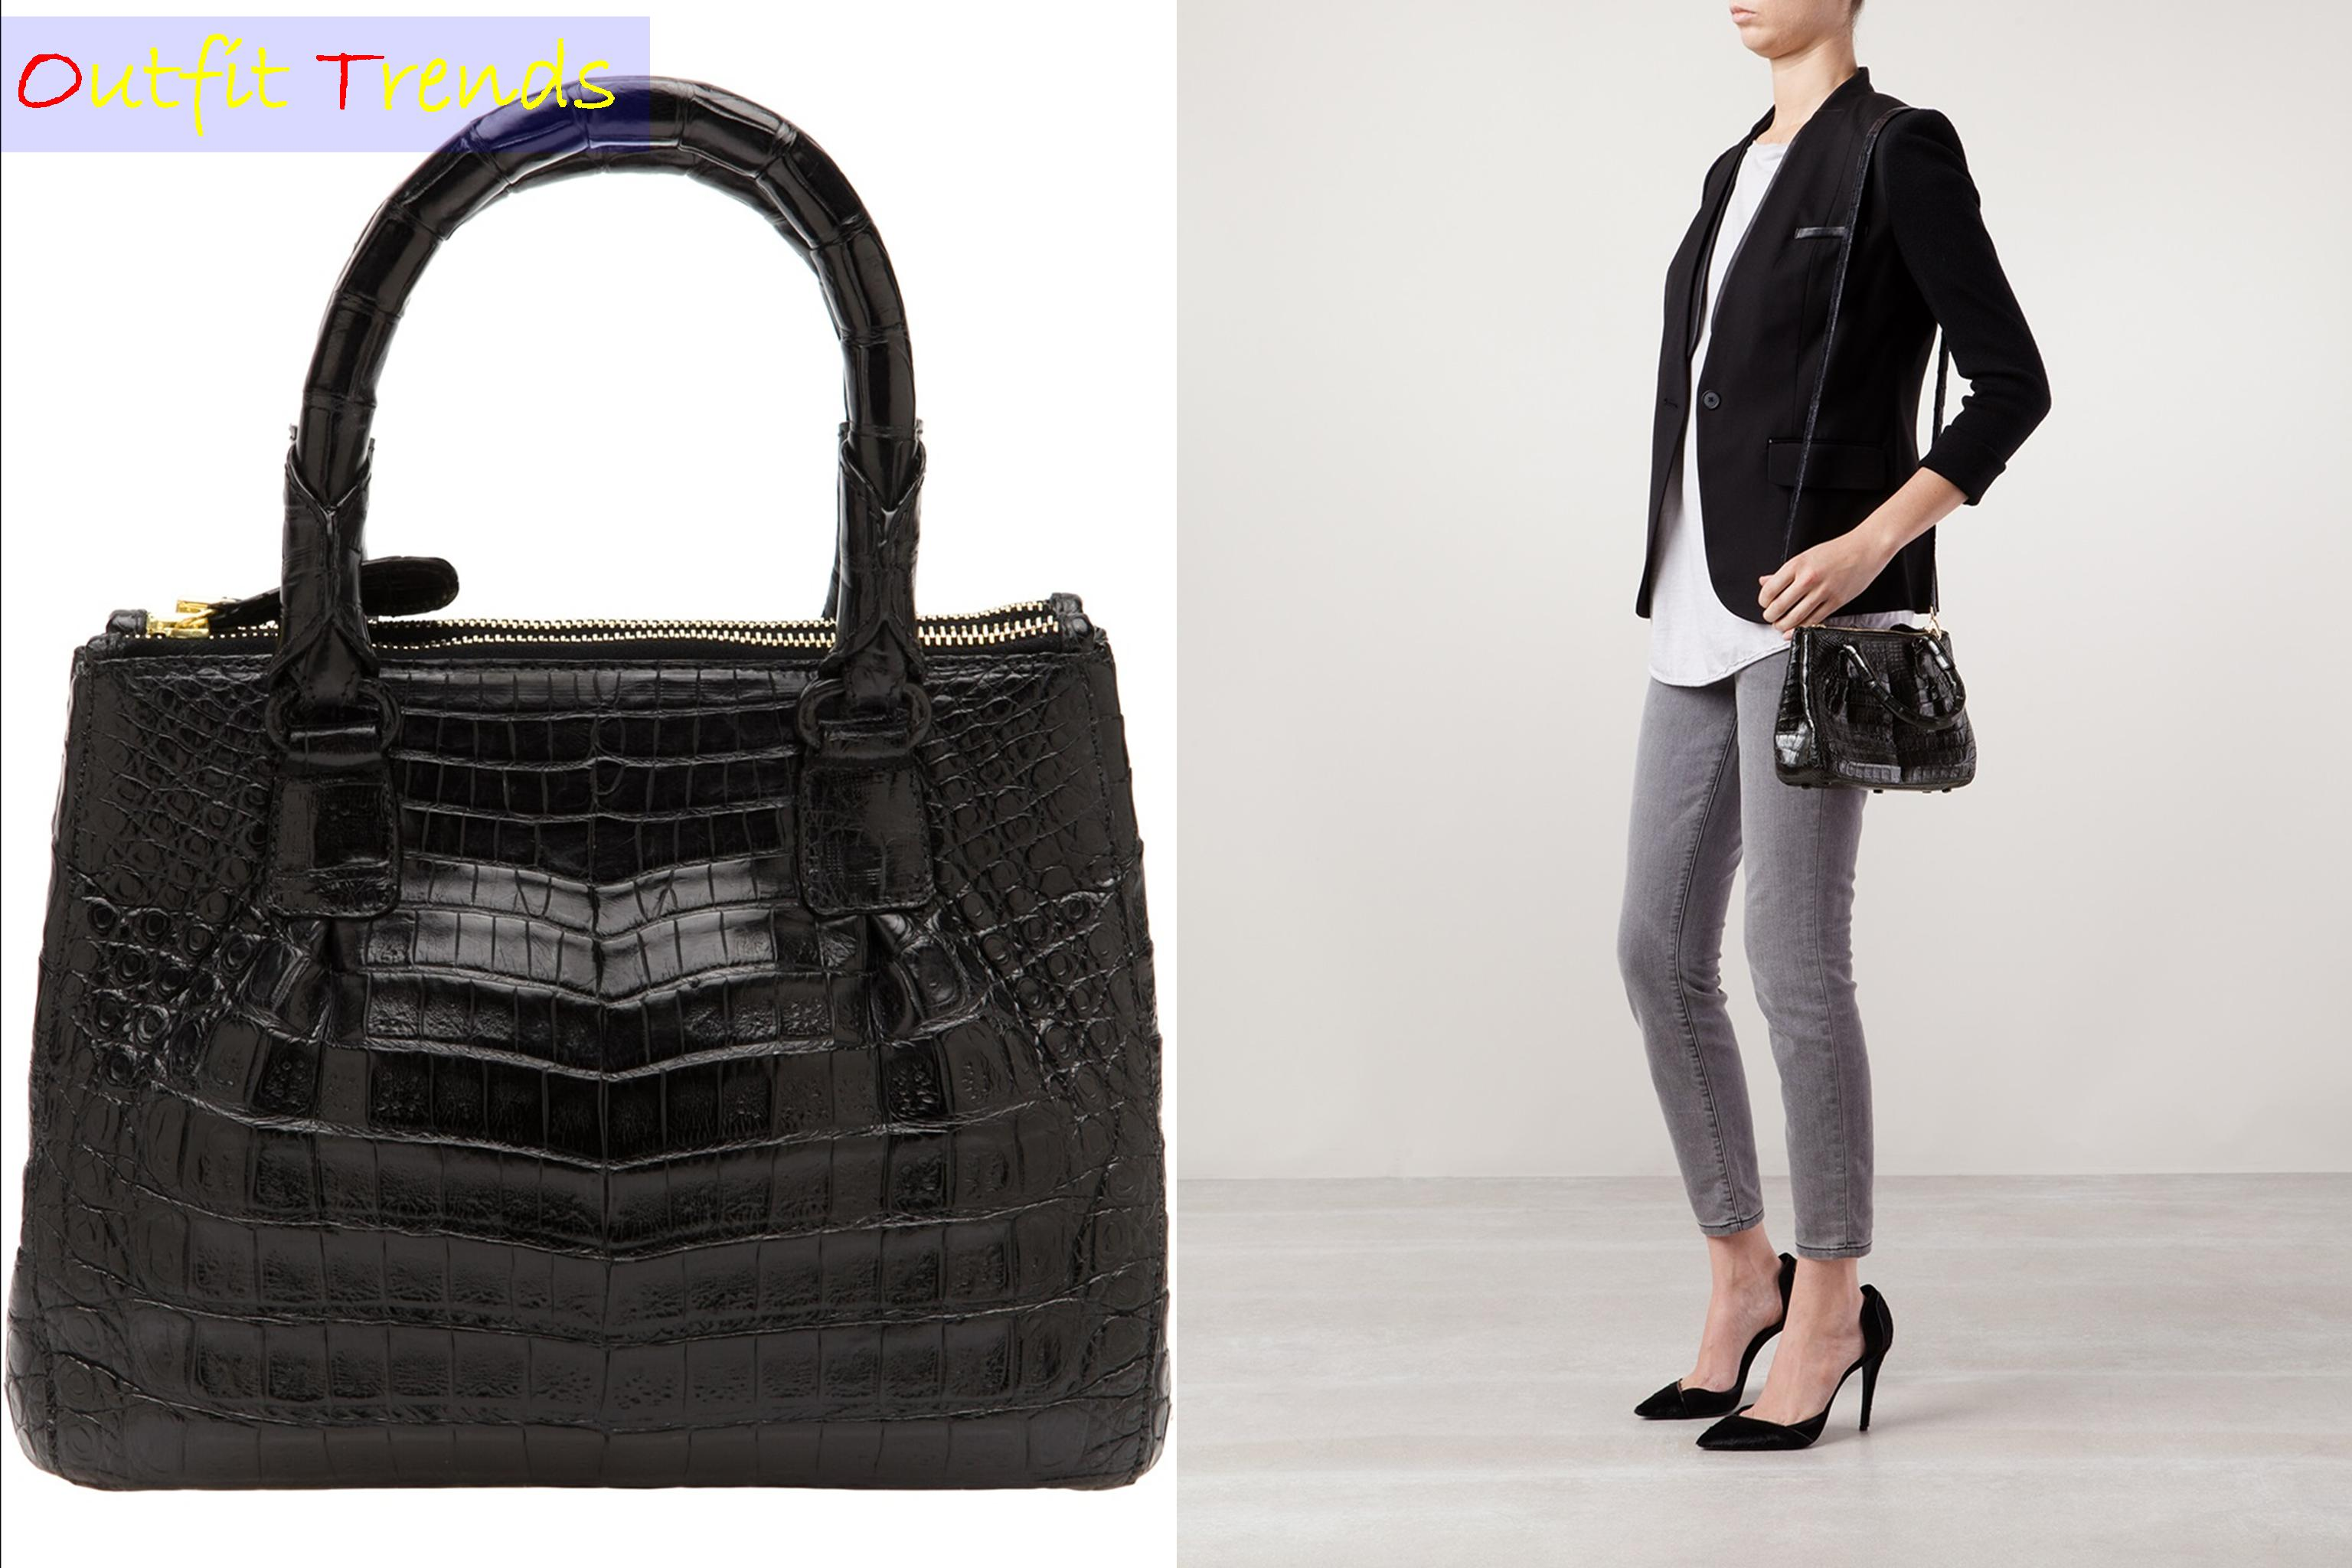 crocodile-leather-tote1 13 Most Fashionable and Stylish Tote Bags for Women